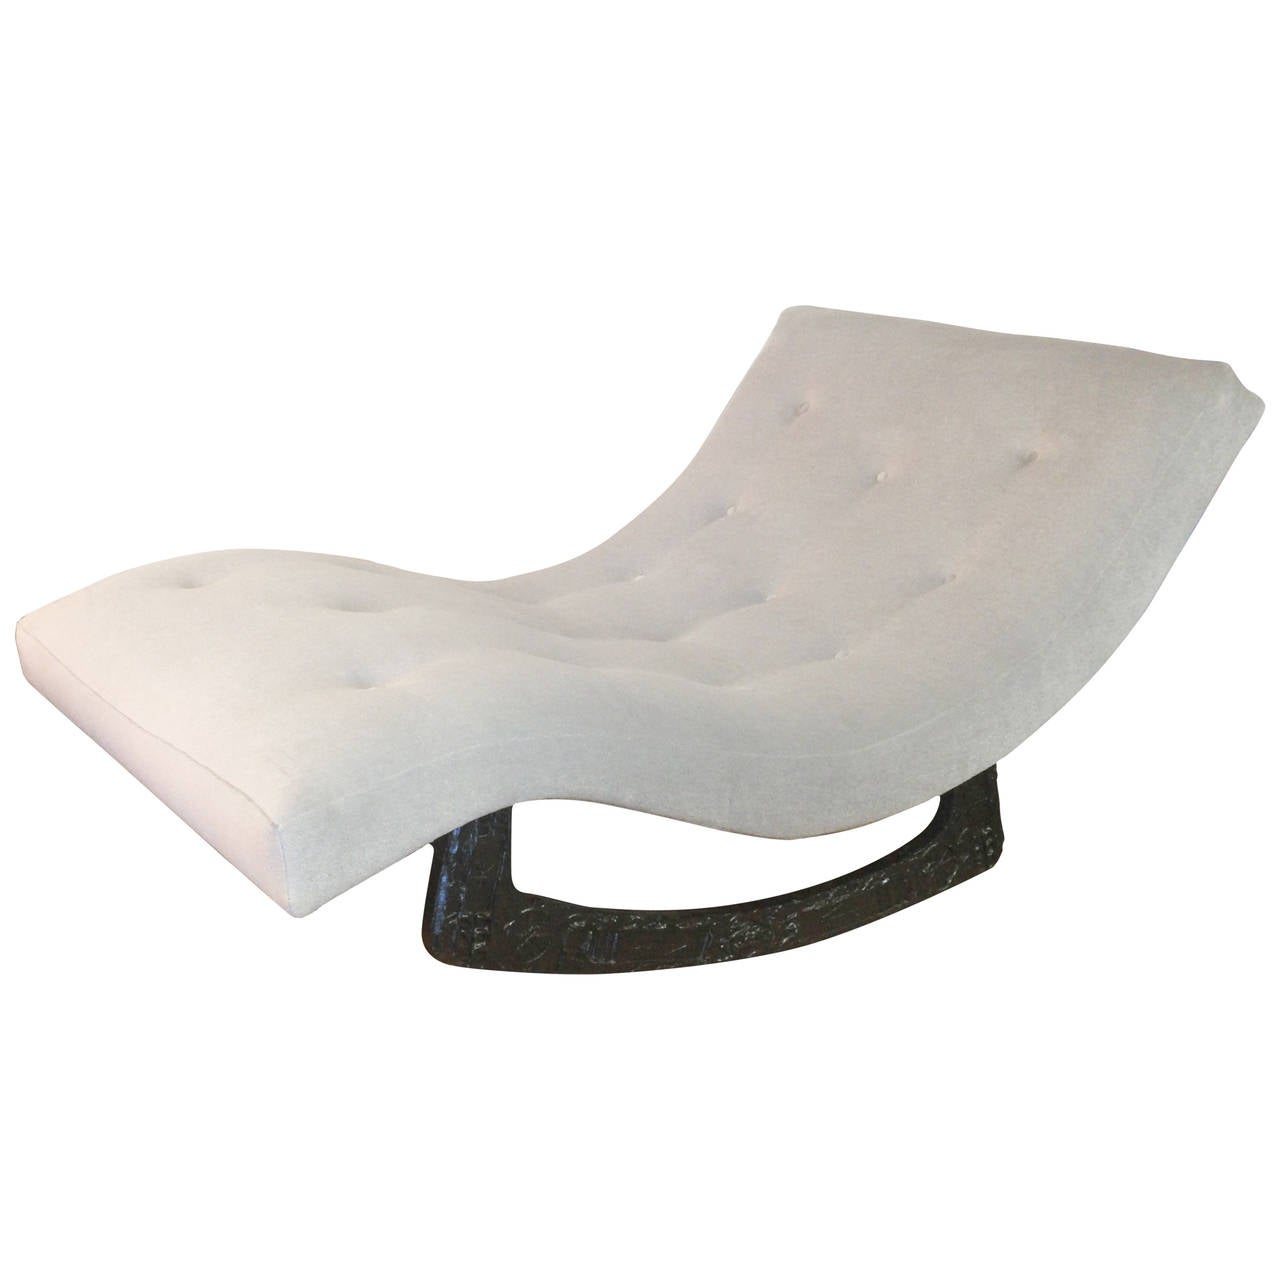 Rocking chaise by adrian pearsall at 1stdibs for Adrian pearsall rocking chaise